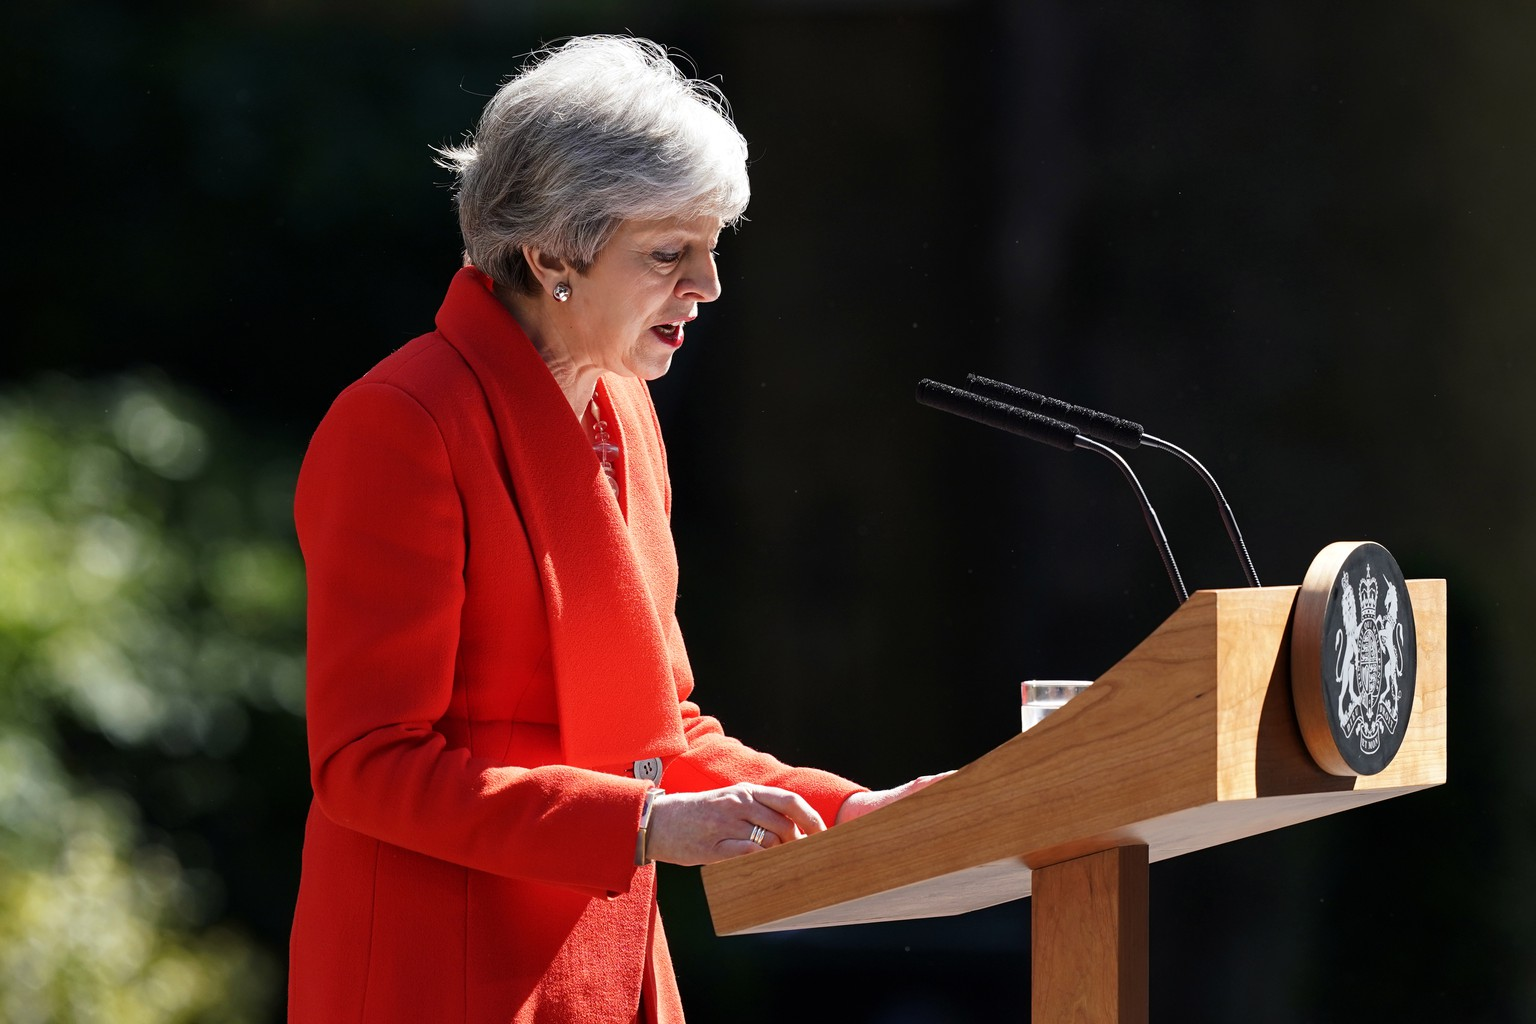 epa07596522 Britain's Prime Minister Theresa May makes a statement on at Downing Street in London in Britain, 24 May 2019. May announced she would resign from office on 07 June 2019. Amid the gridlock with MPs over her handling of Brexit, in her latest bid to get Brexit through Parliament, Theresa May on 21 May unveiled a new Withdrawal Agreement Bill, including a possible second referendum, a proposal not supported by ministers and unacceptable to Conservative eurosceptics.  EPA/WILL OLIVER